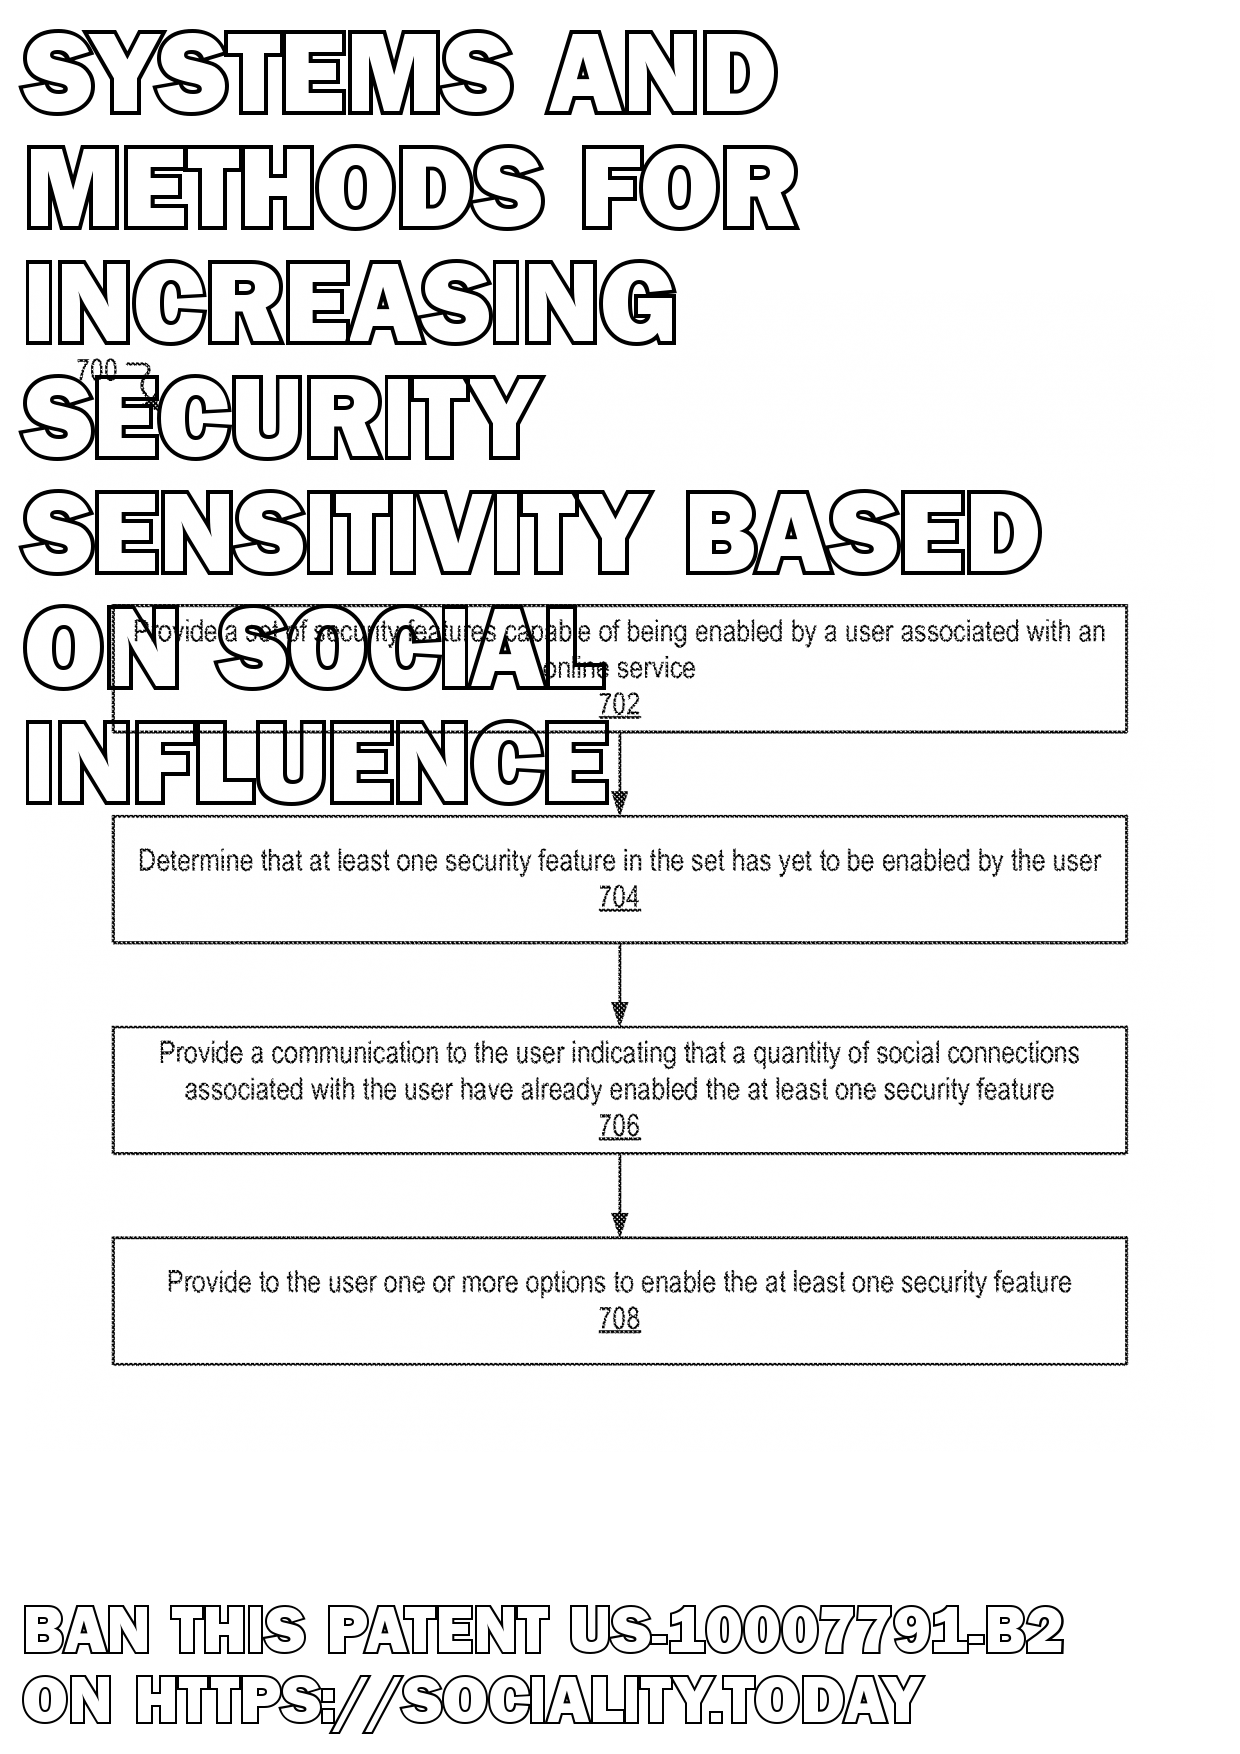 Systems and methods for increasing security sensitivity based on social influence  - US-10007791-B2